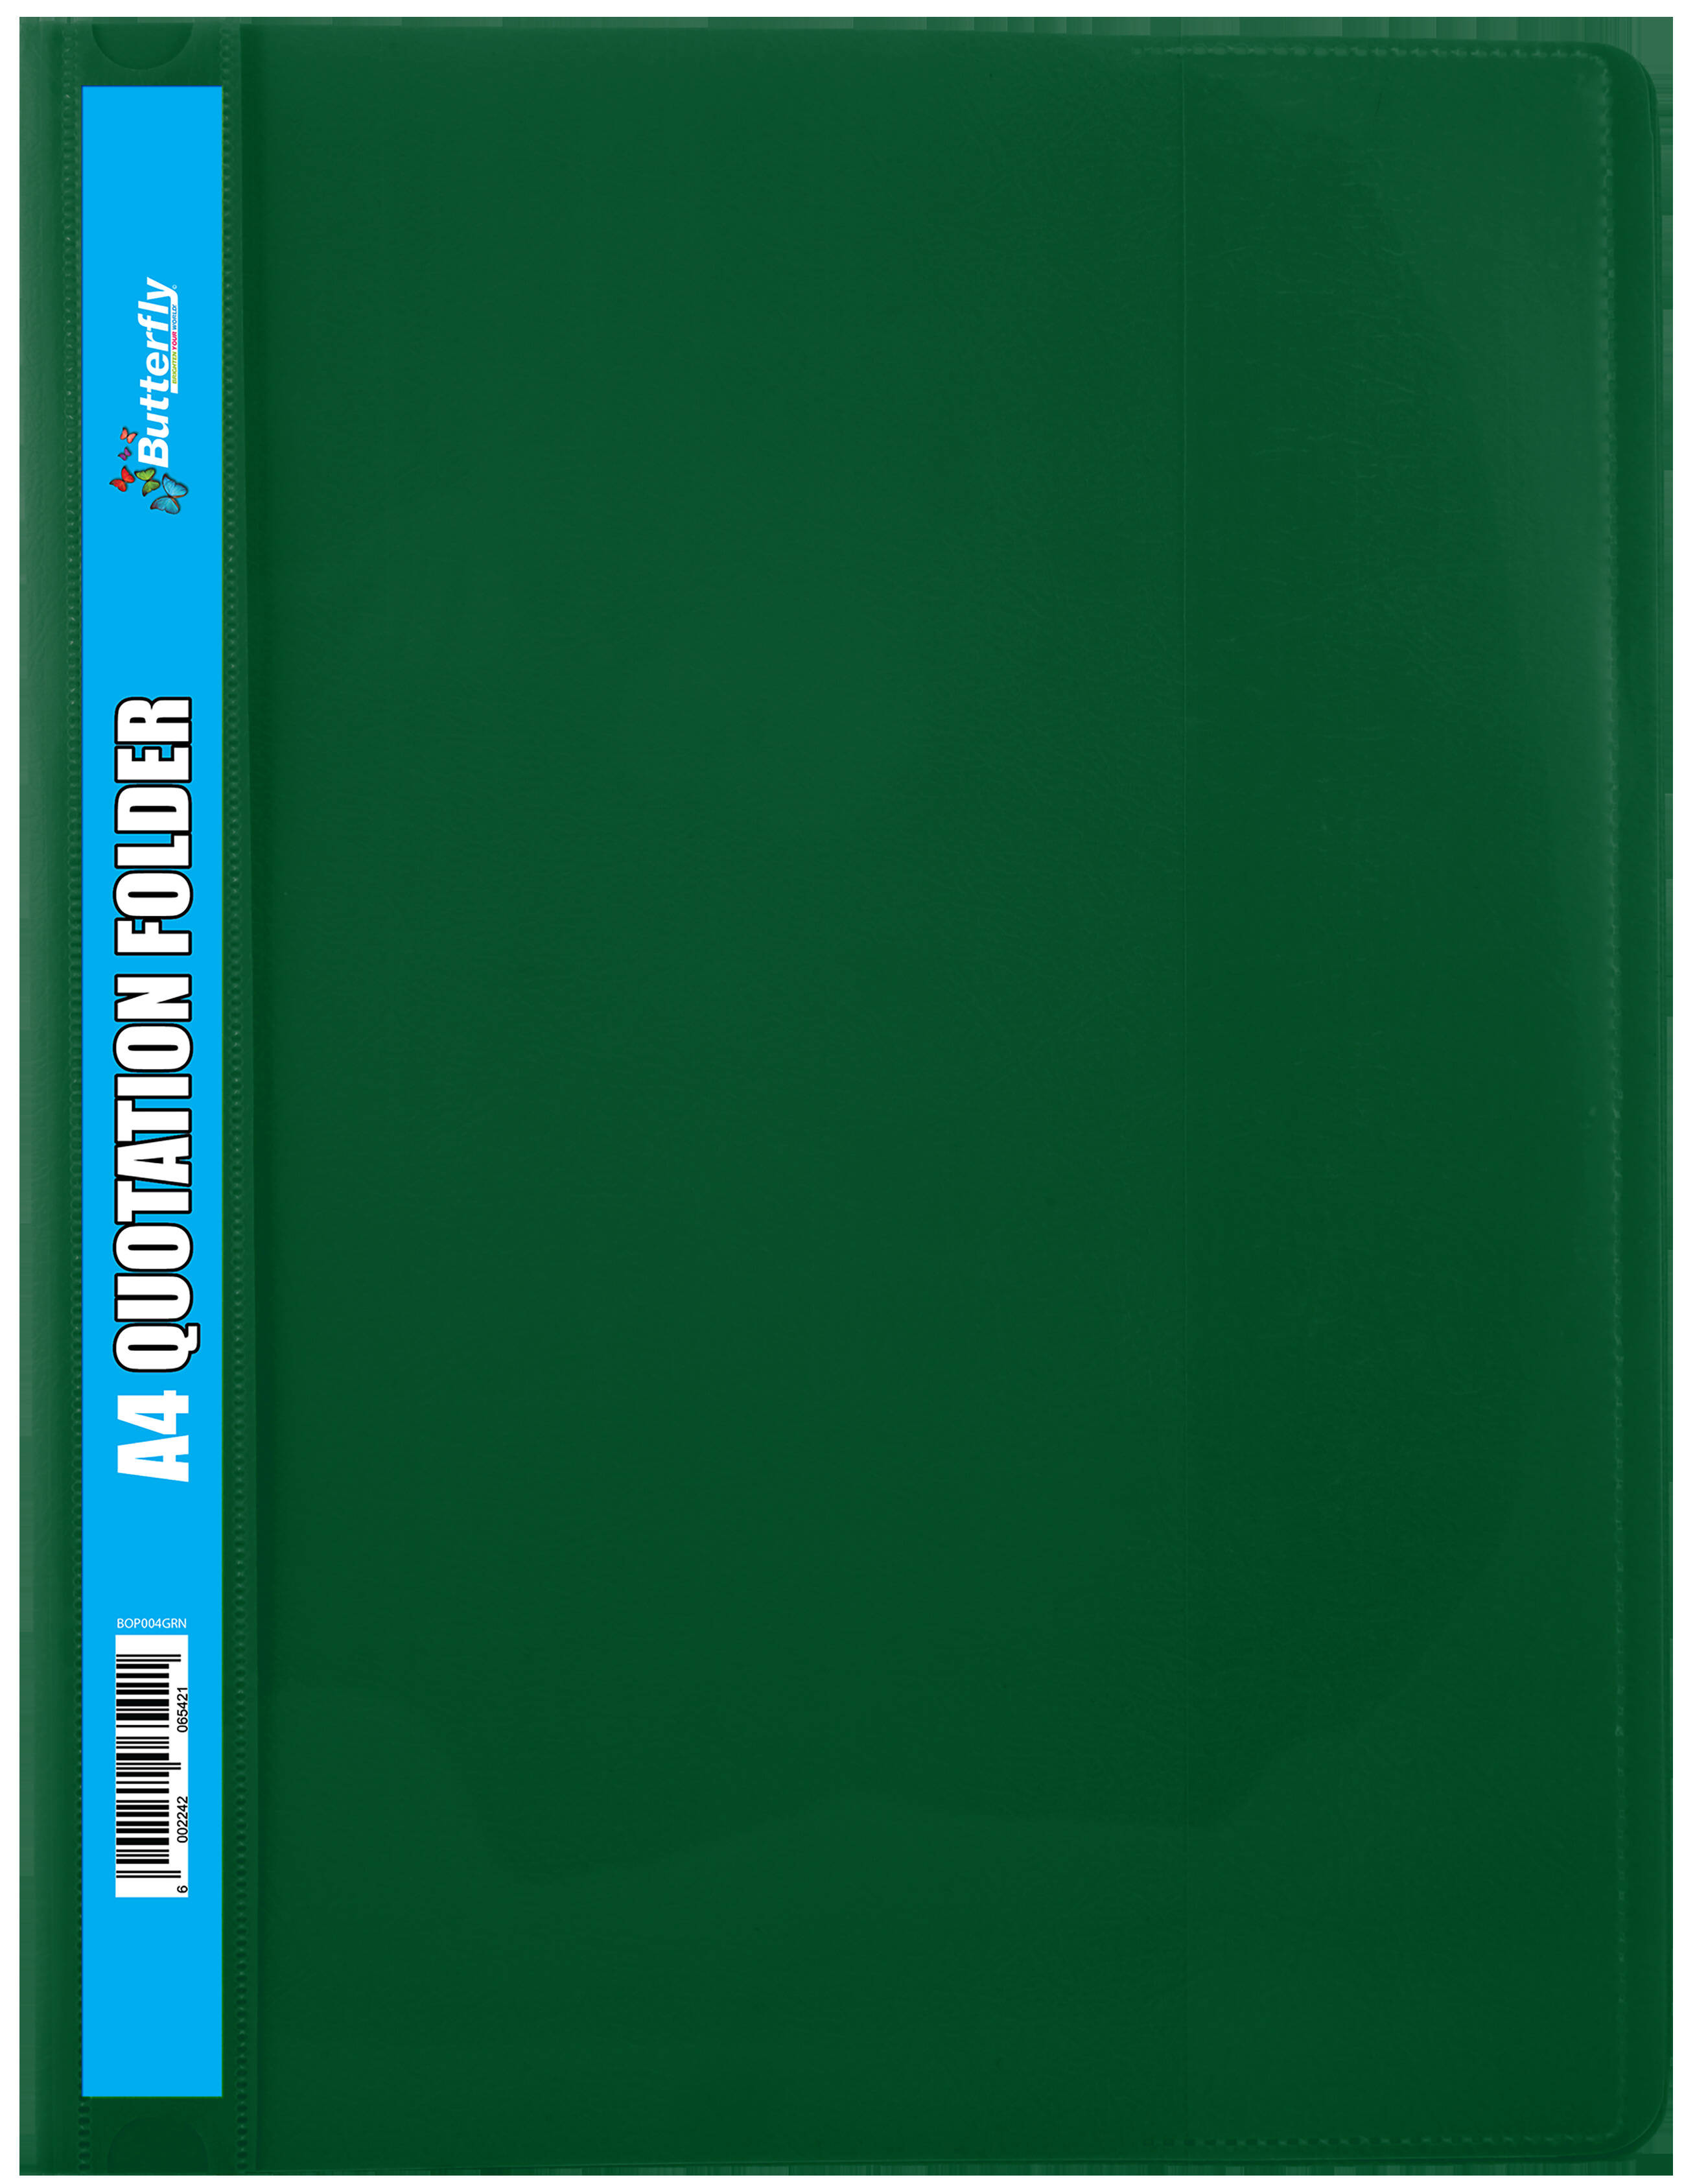 A4 Quotation Folders - 180 Micron - Green